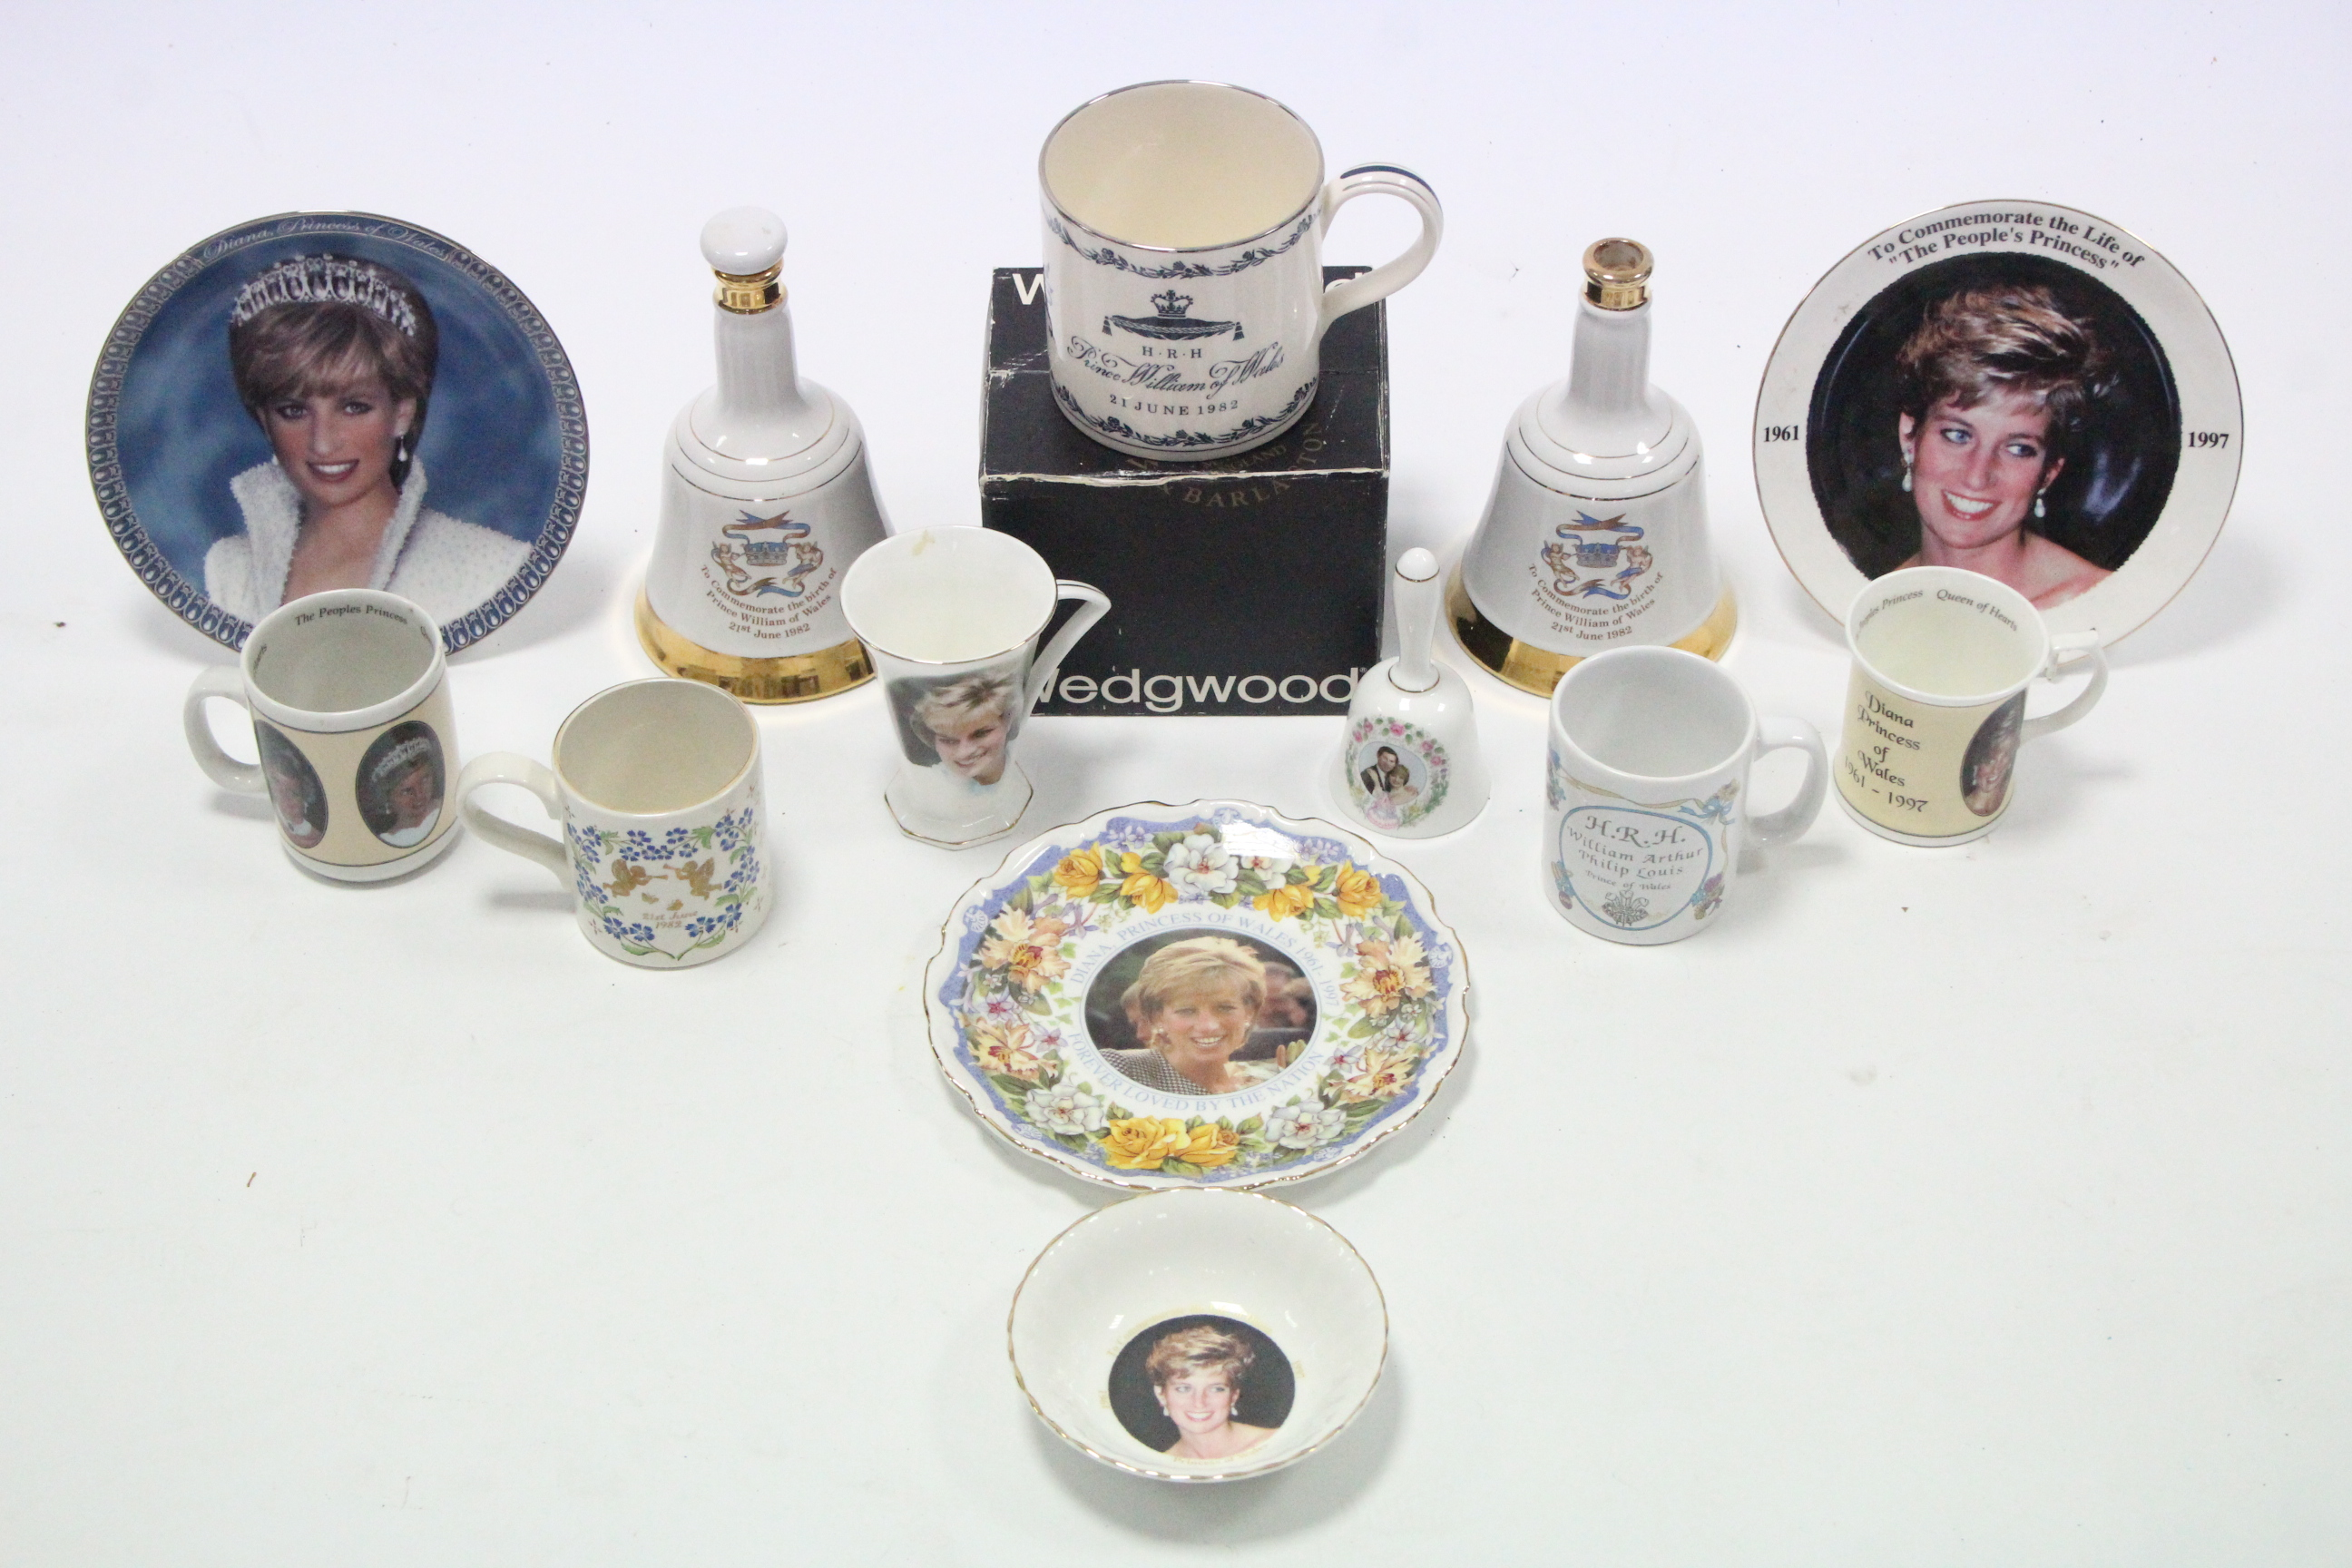 Lot 32 - Various commemorative items commemorating the birth of Prince William in 1982, & the death of